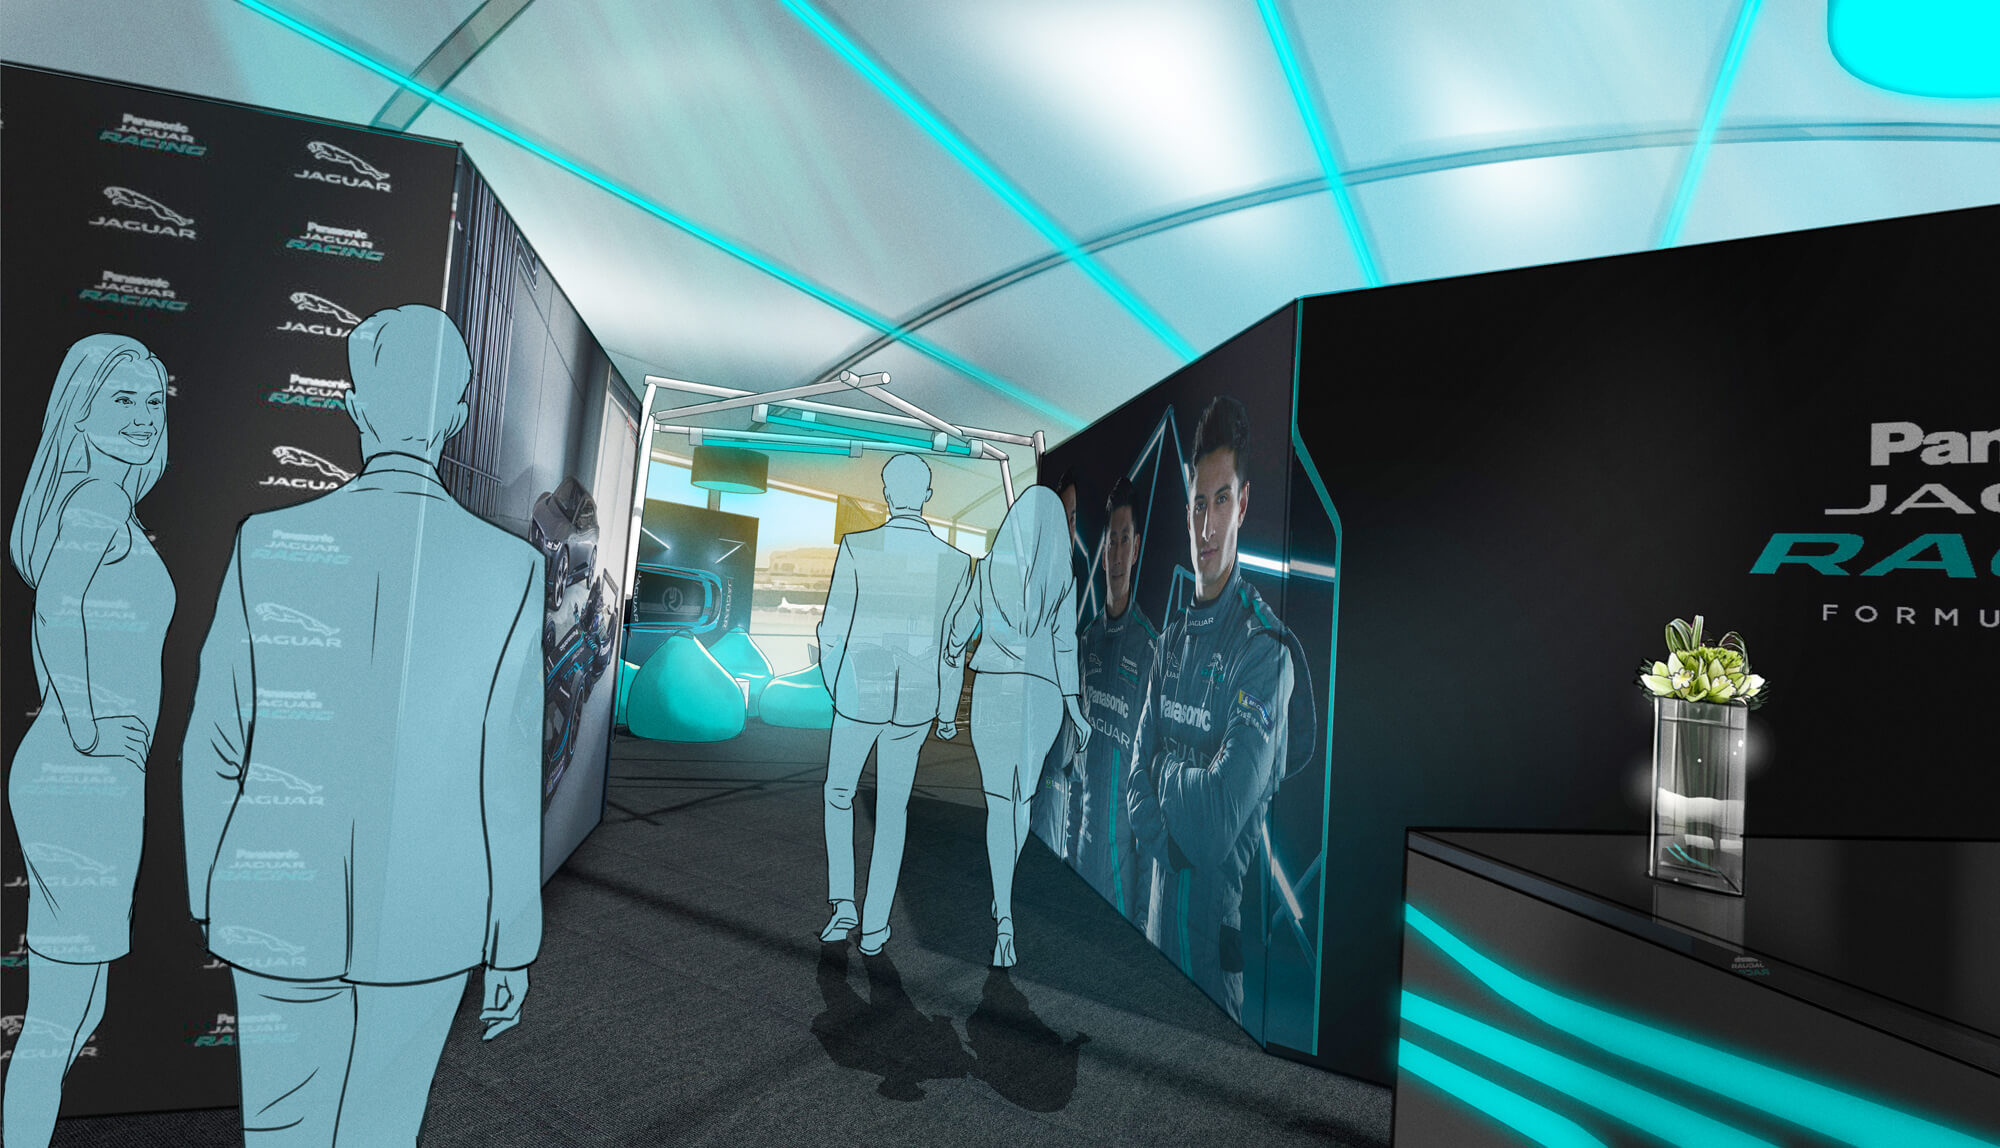 JaguarRacing_Experiential_3_Entrance.jpg